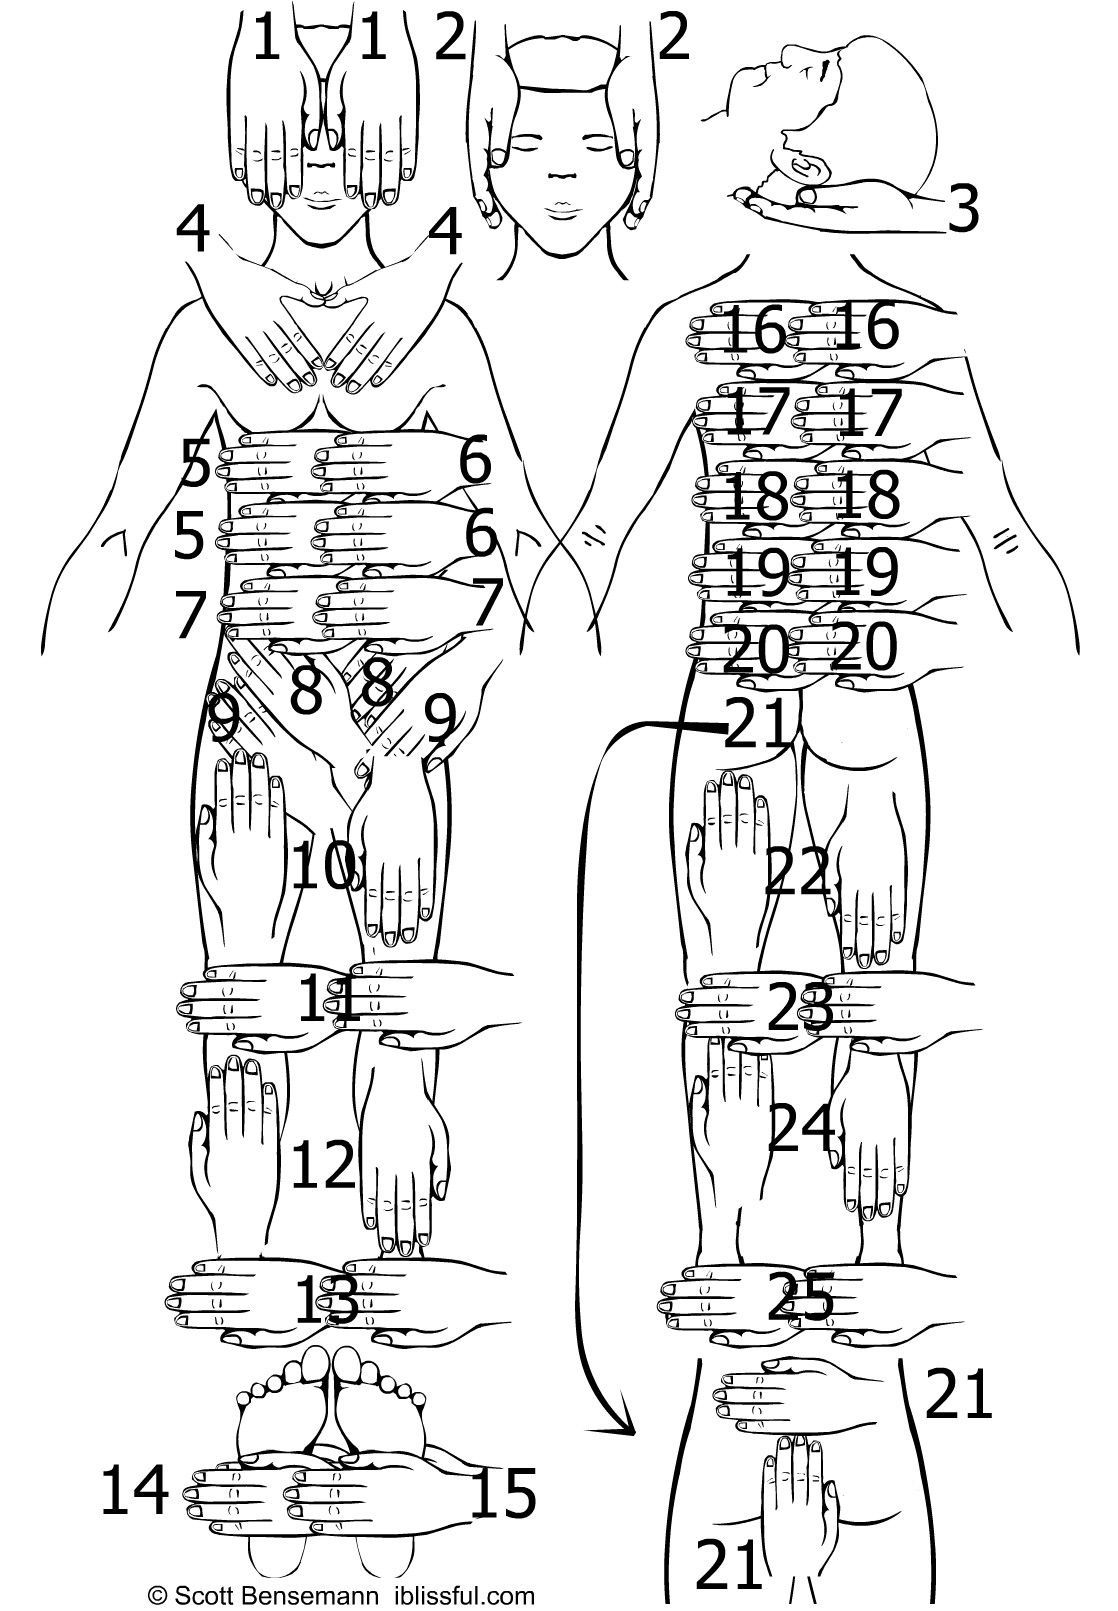 Image Detail For Reiki 1 Hand Position Guide Sheet